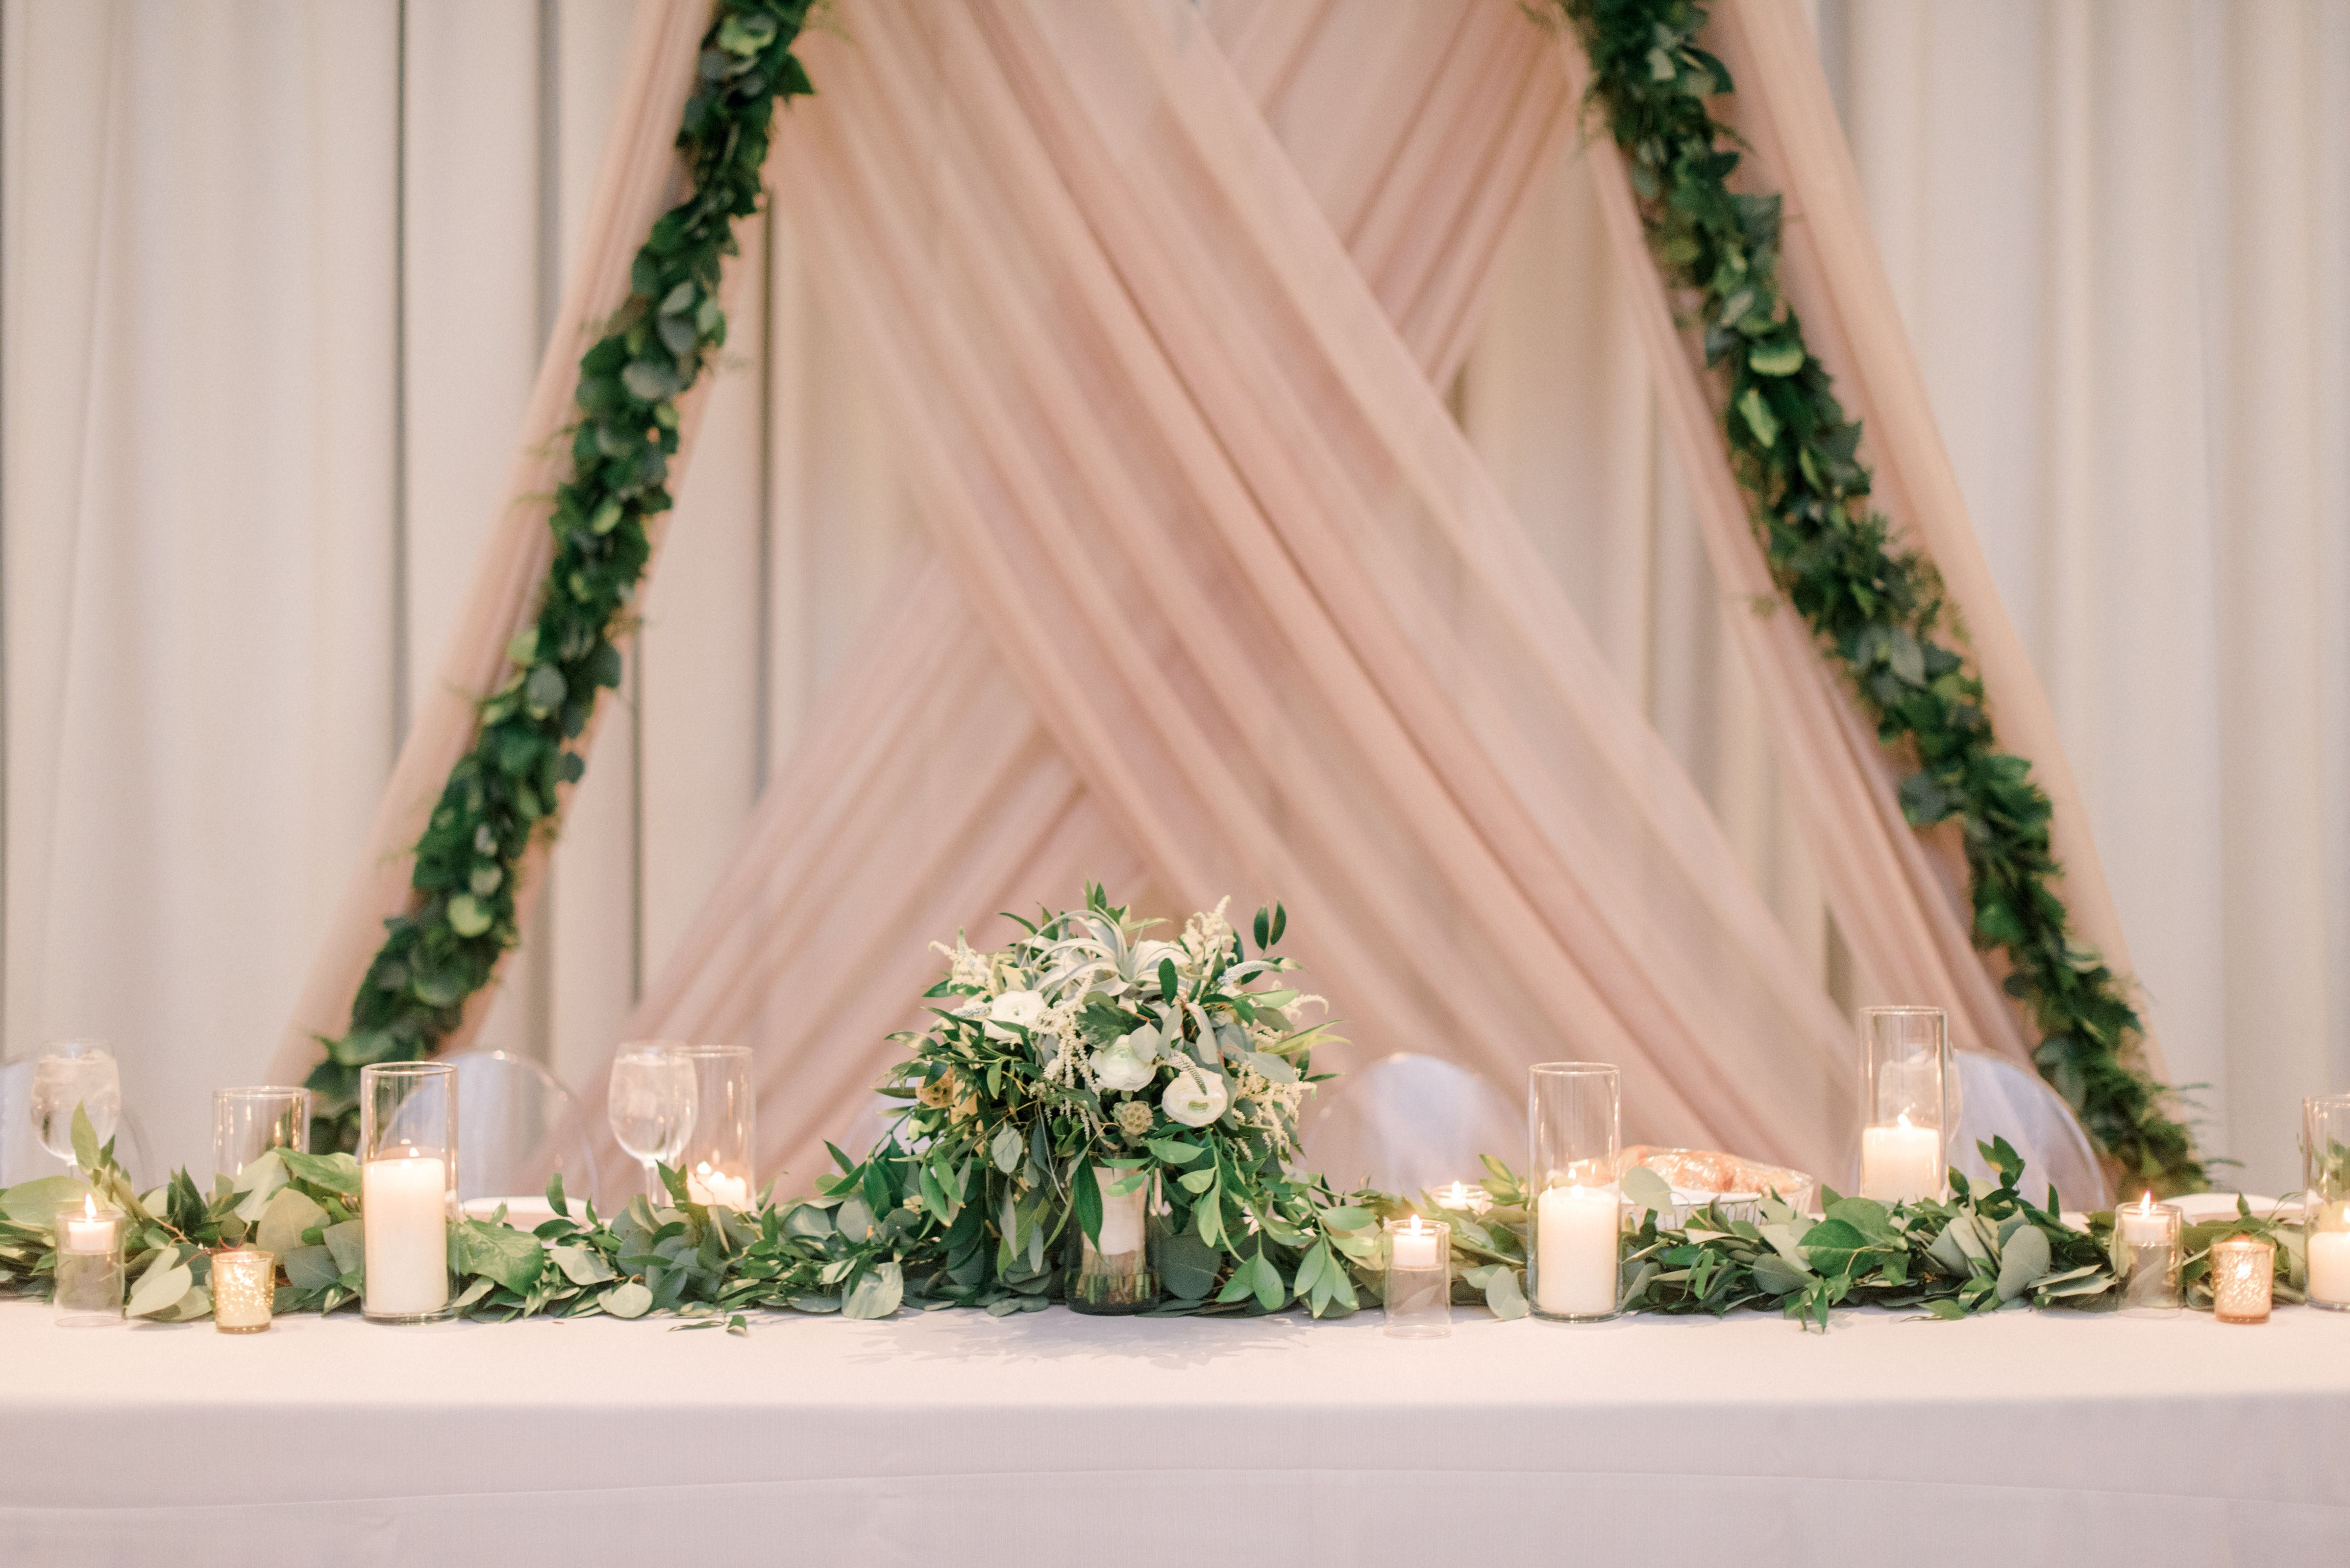 Wedding decor with ghost chairs  Beautiful summer wedding reception decor with sheer pink curtains